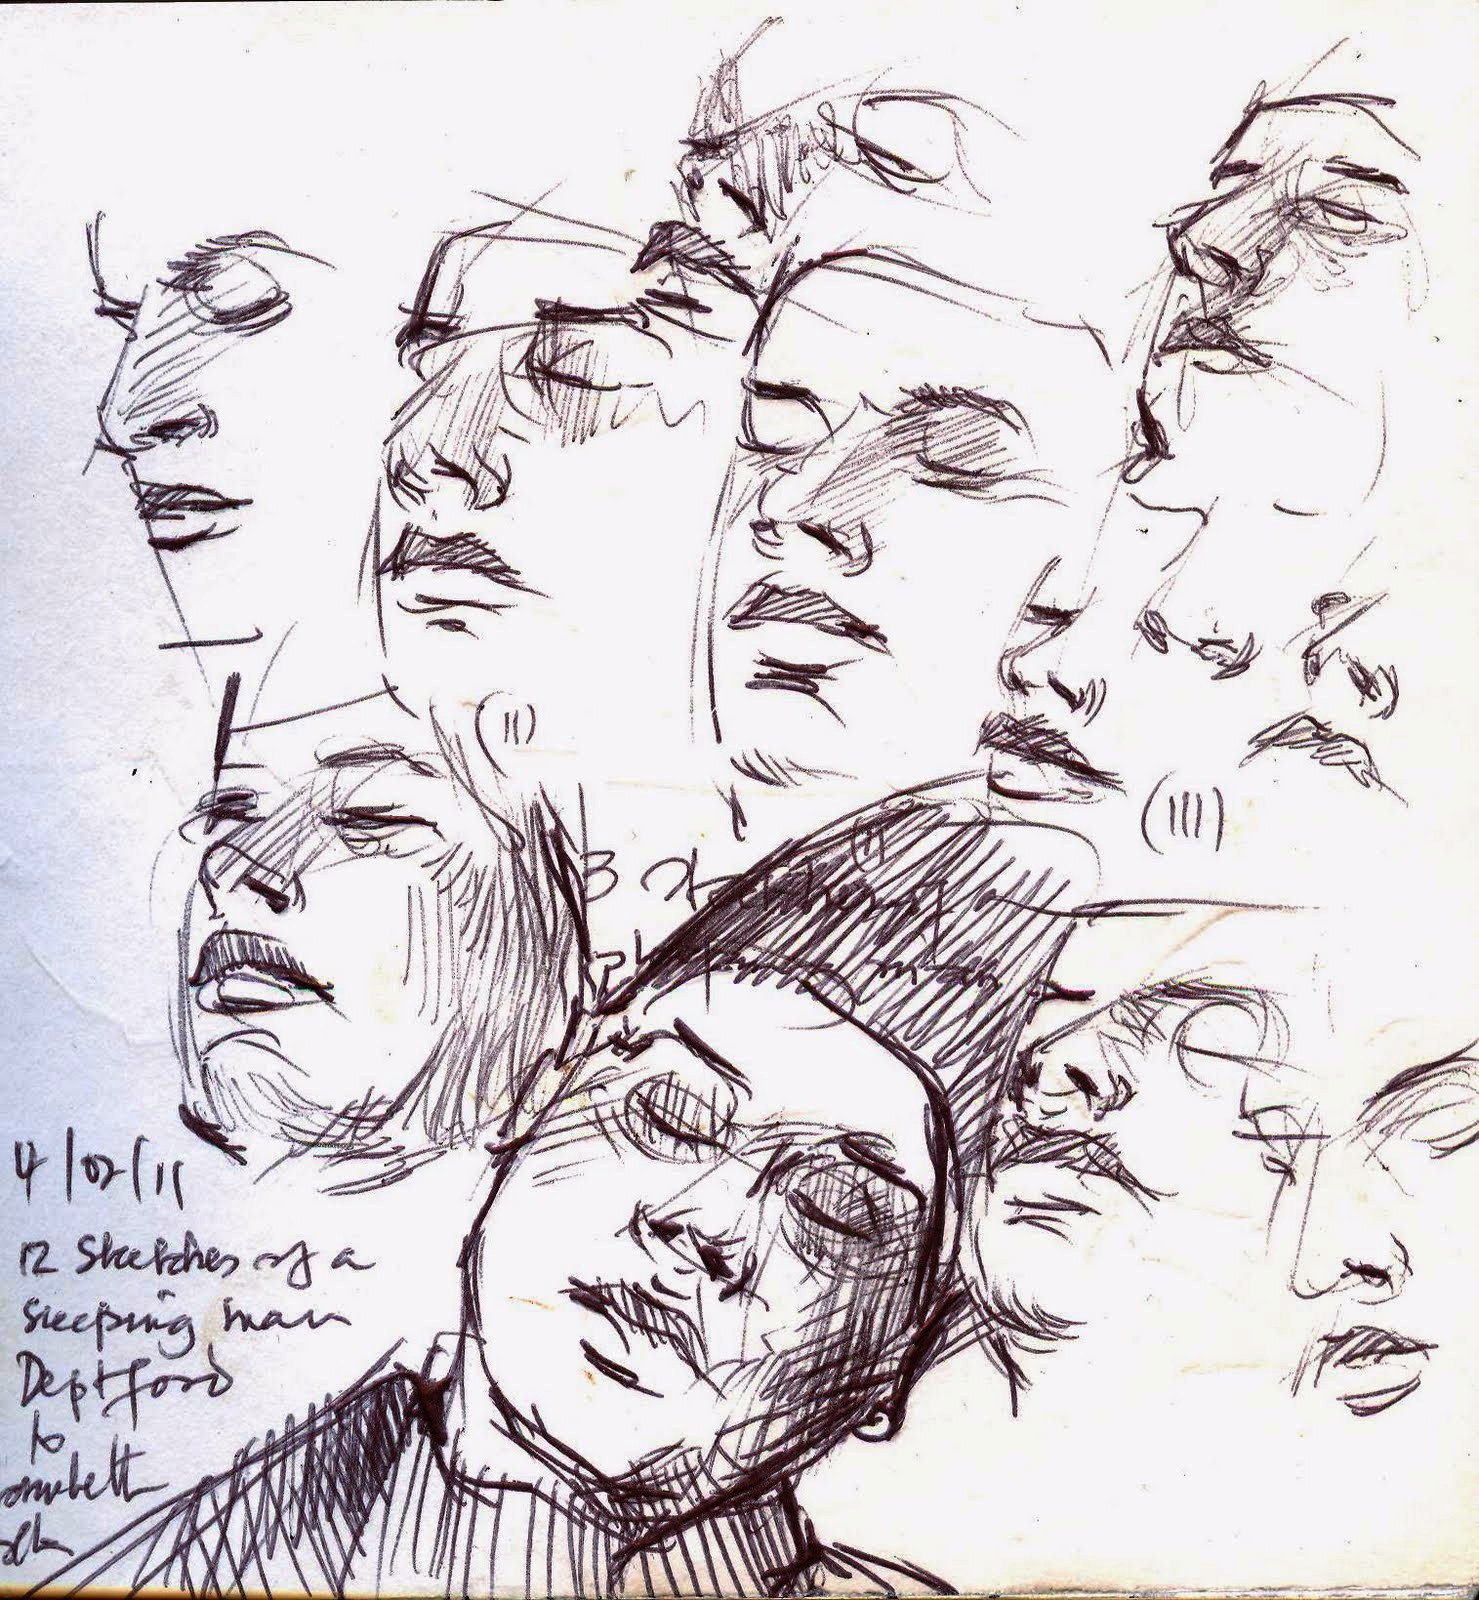 12 sketches of a moving sleeping man